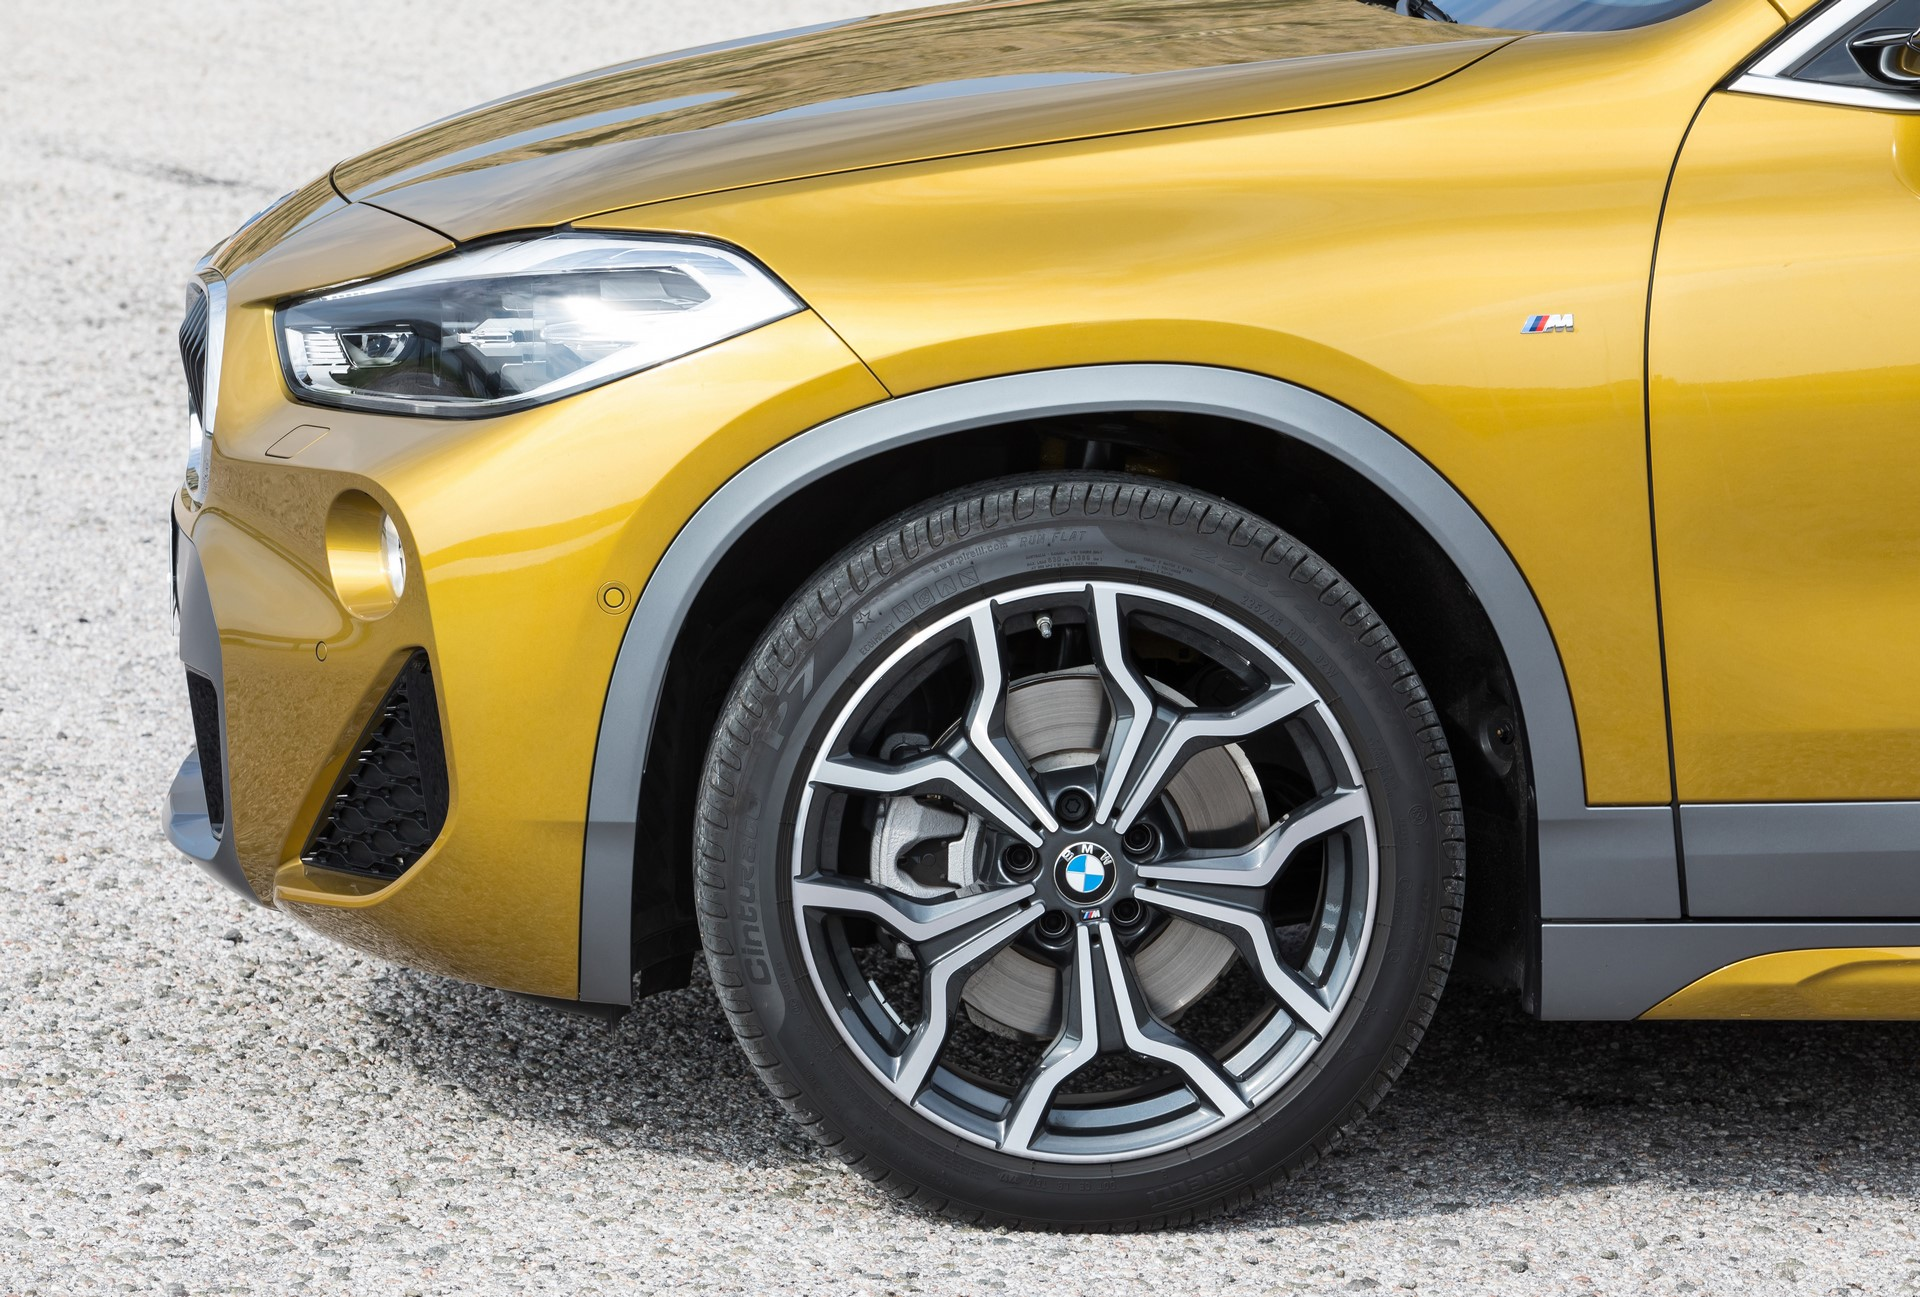 BMW X2 Greek 2018 (10)